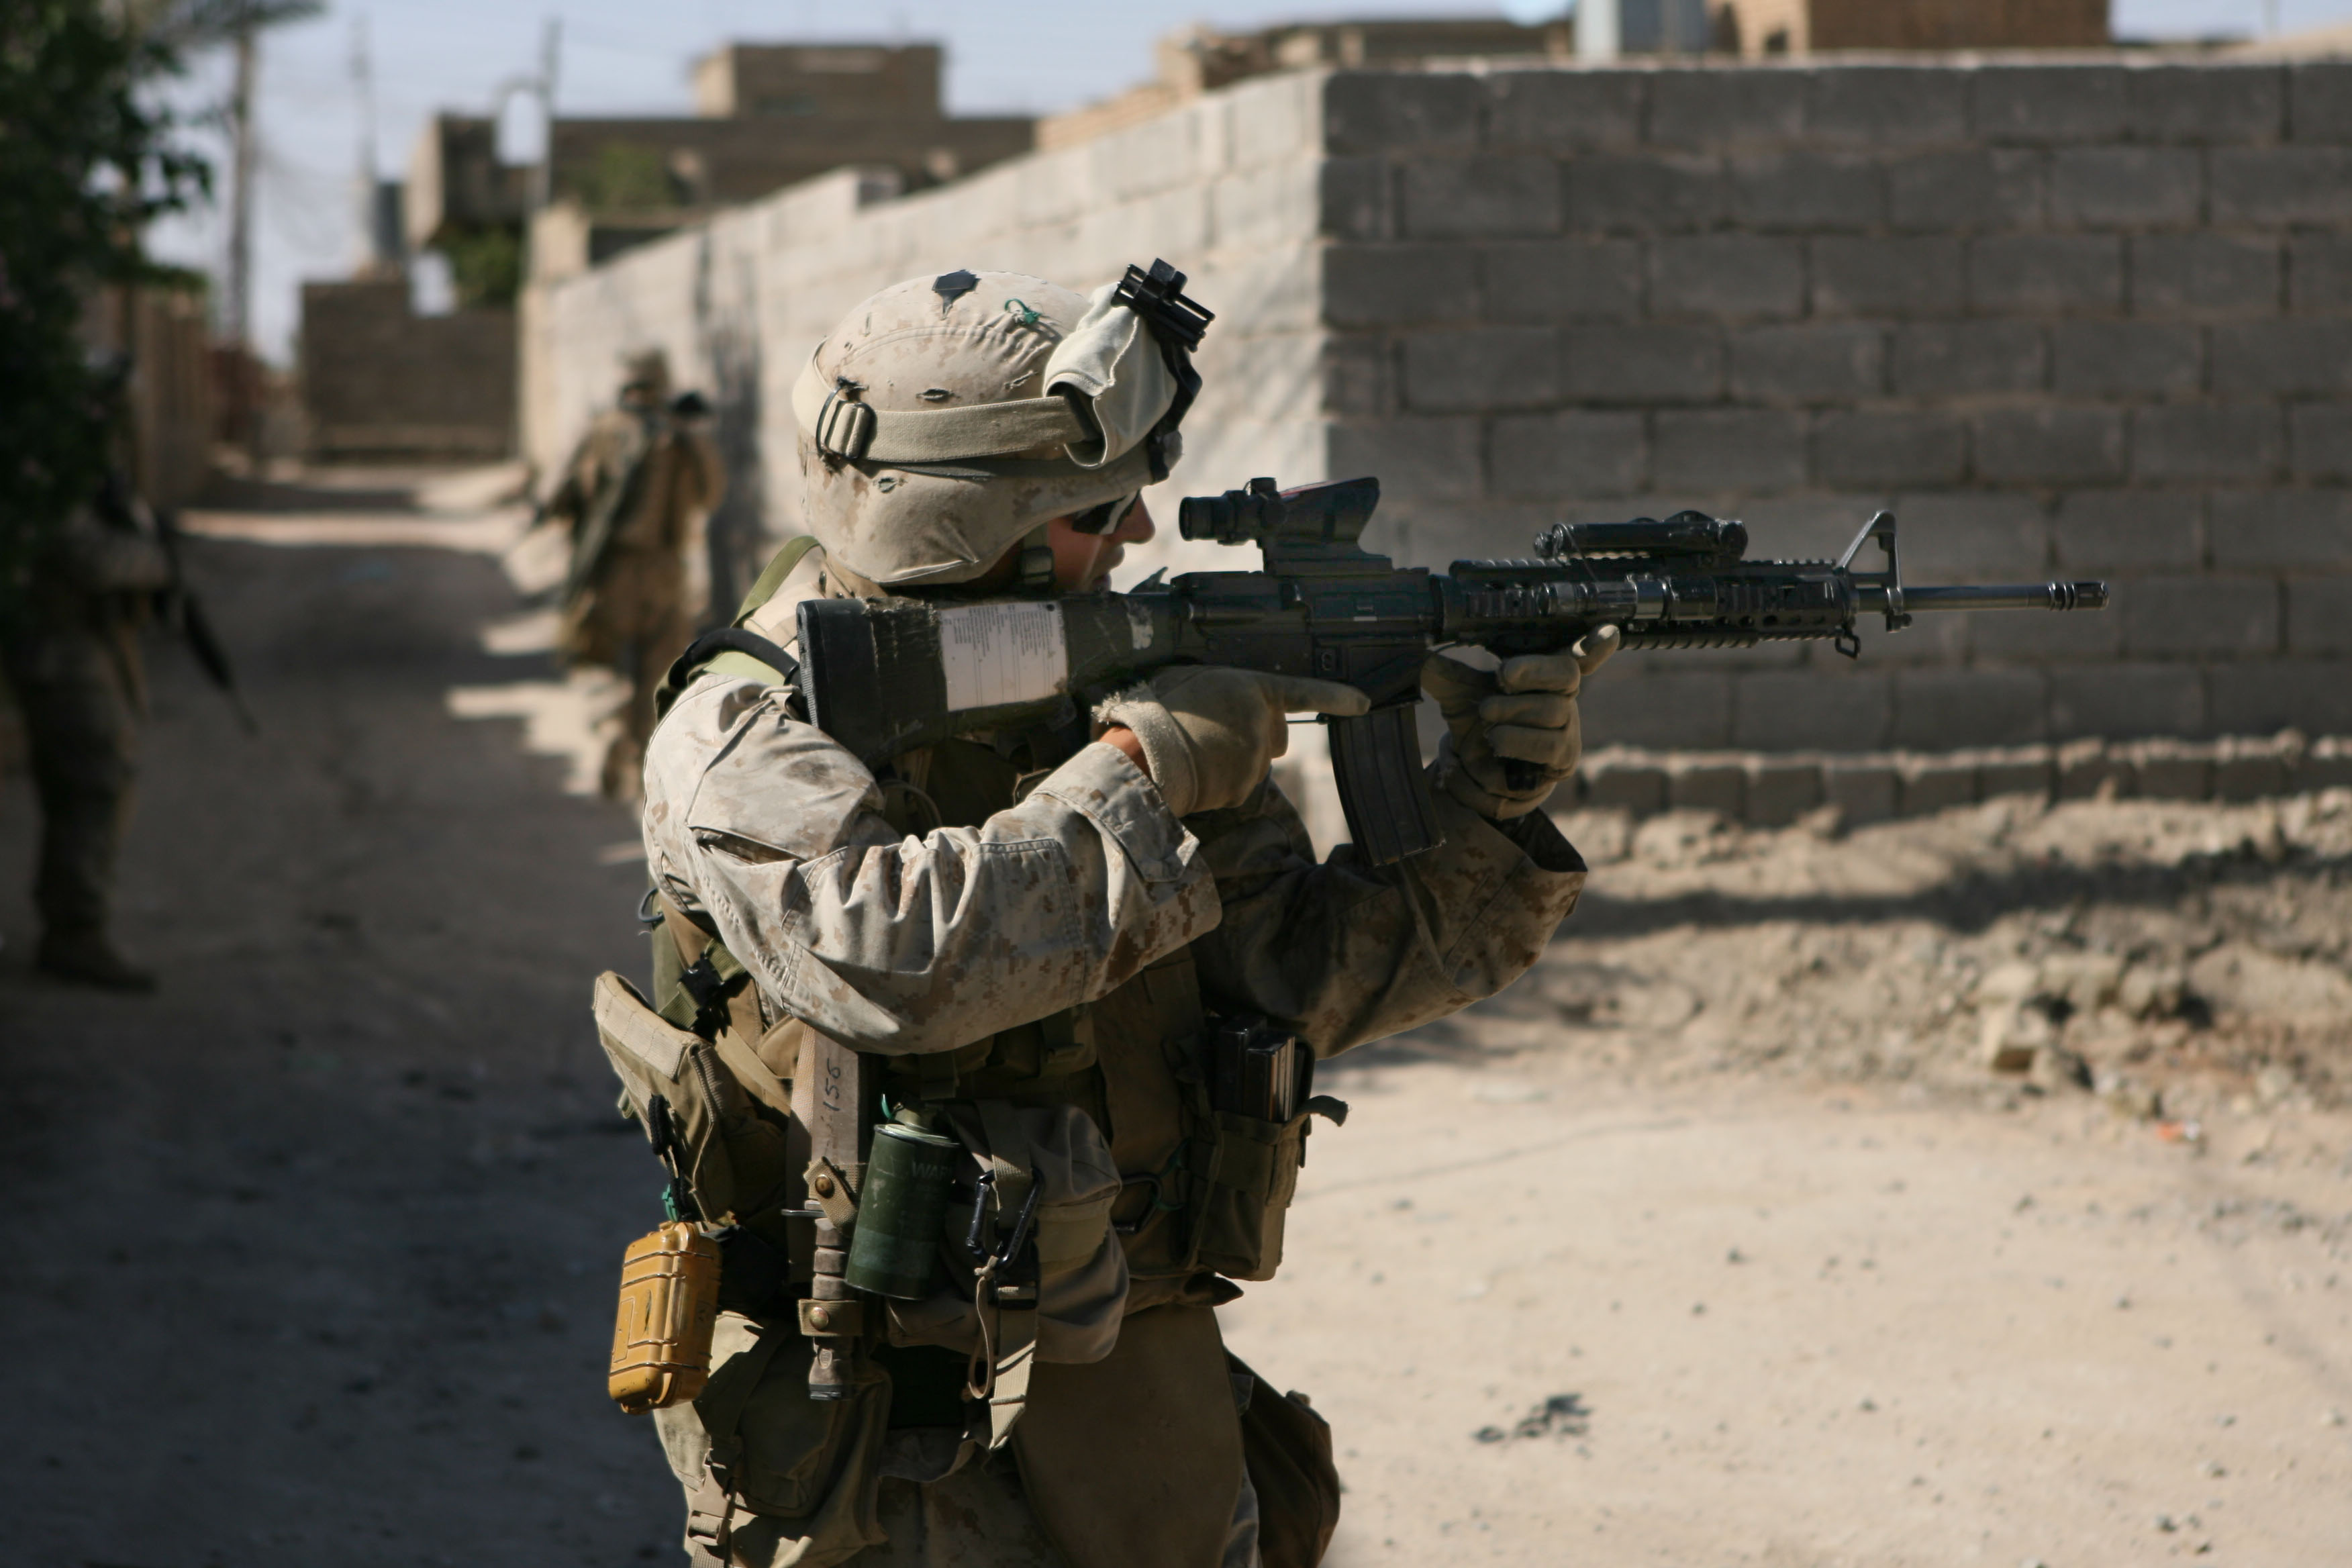 Description Marine M16...